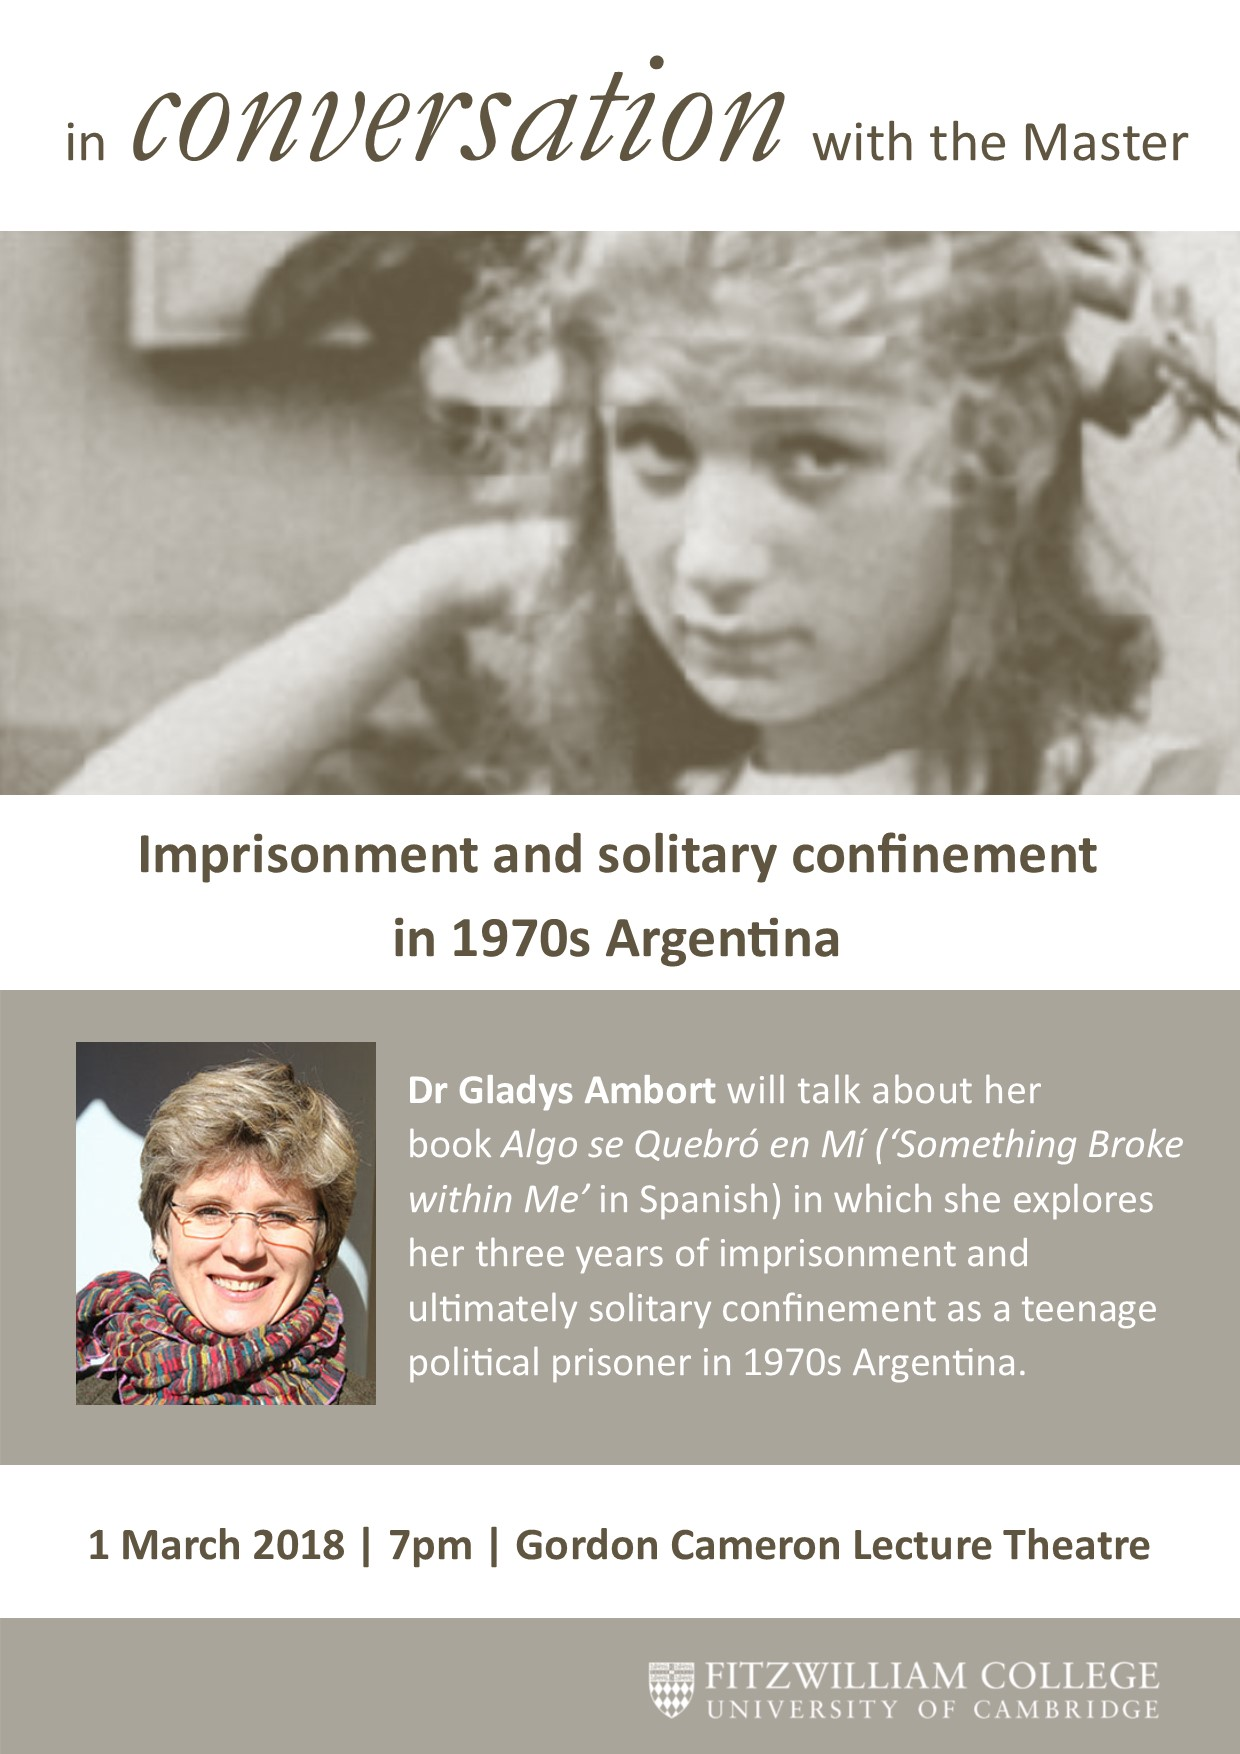 In Conversation with the Master - Dr Gladys Ambort